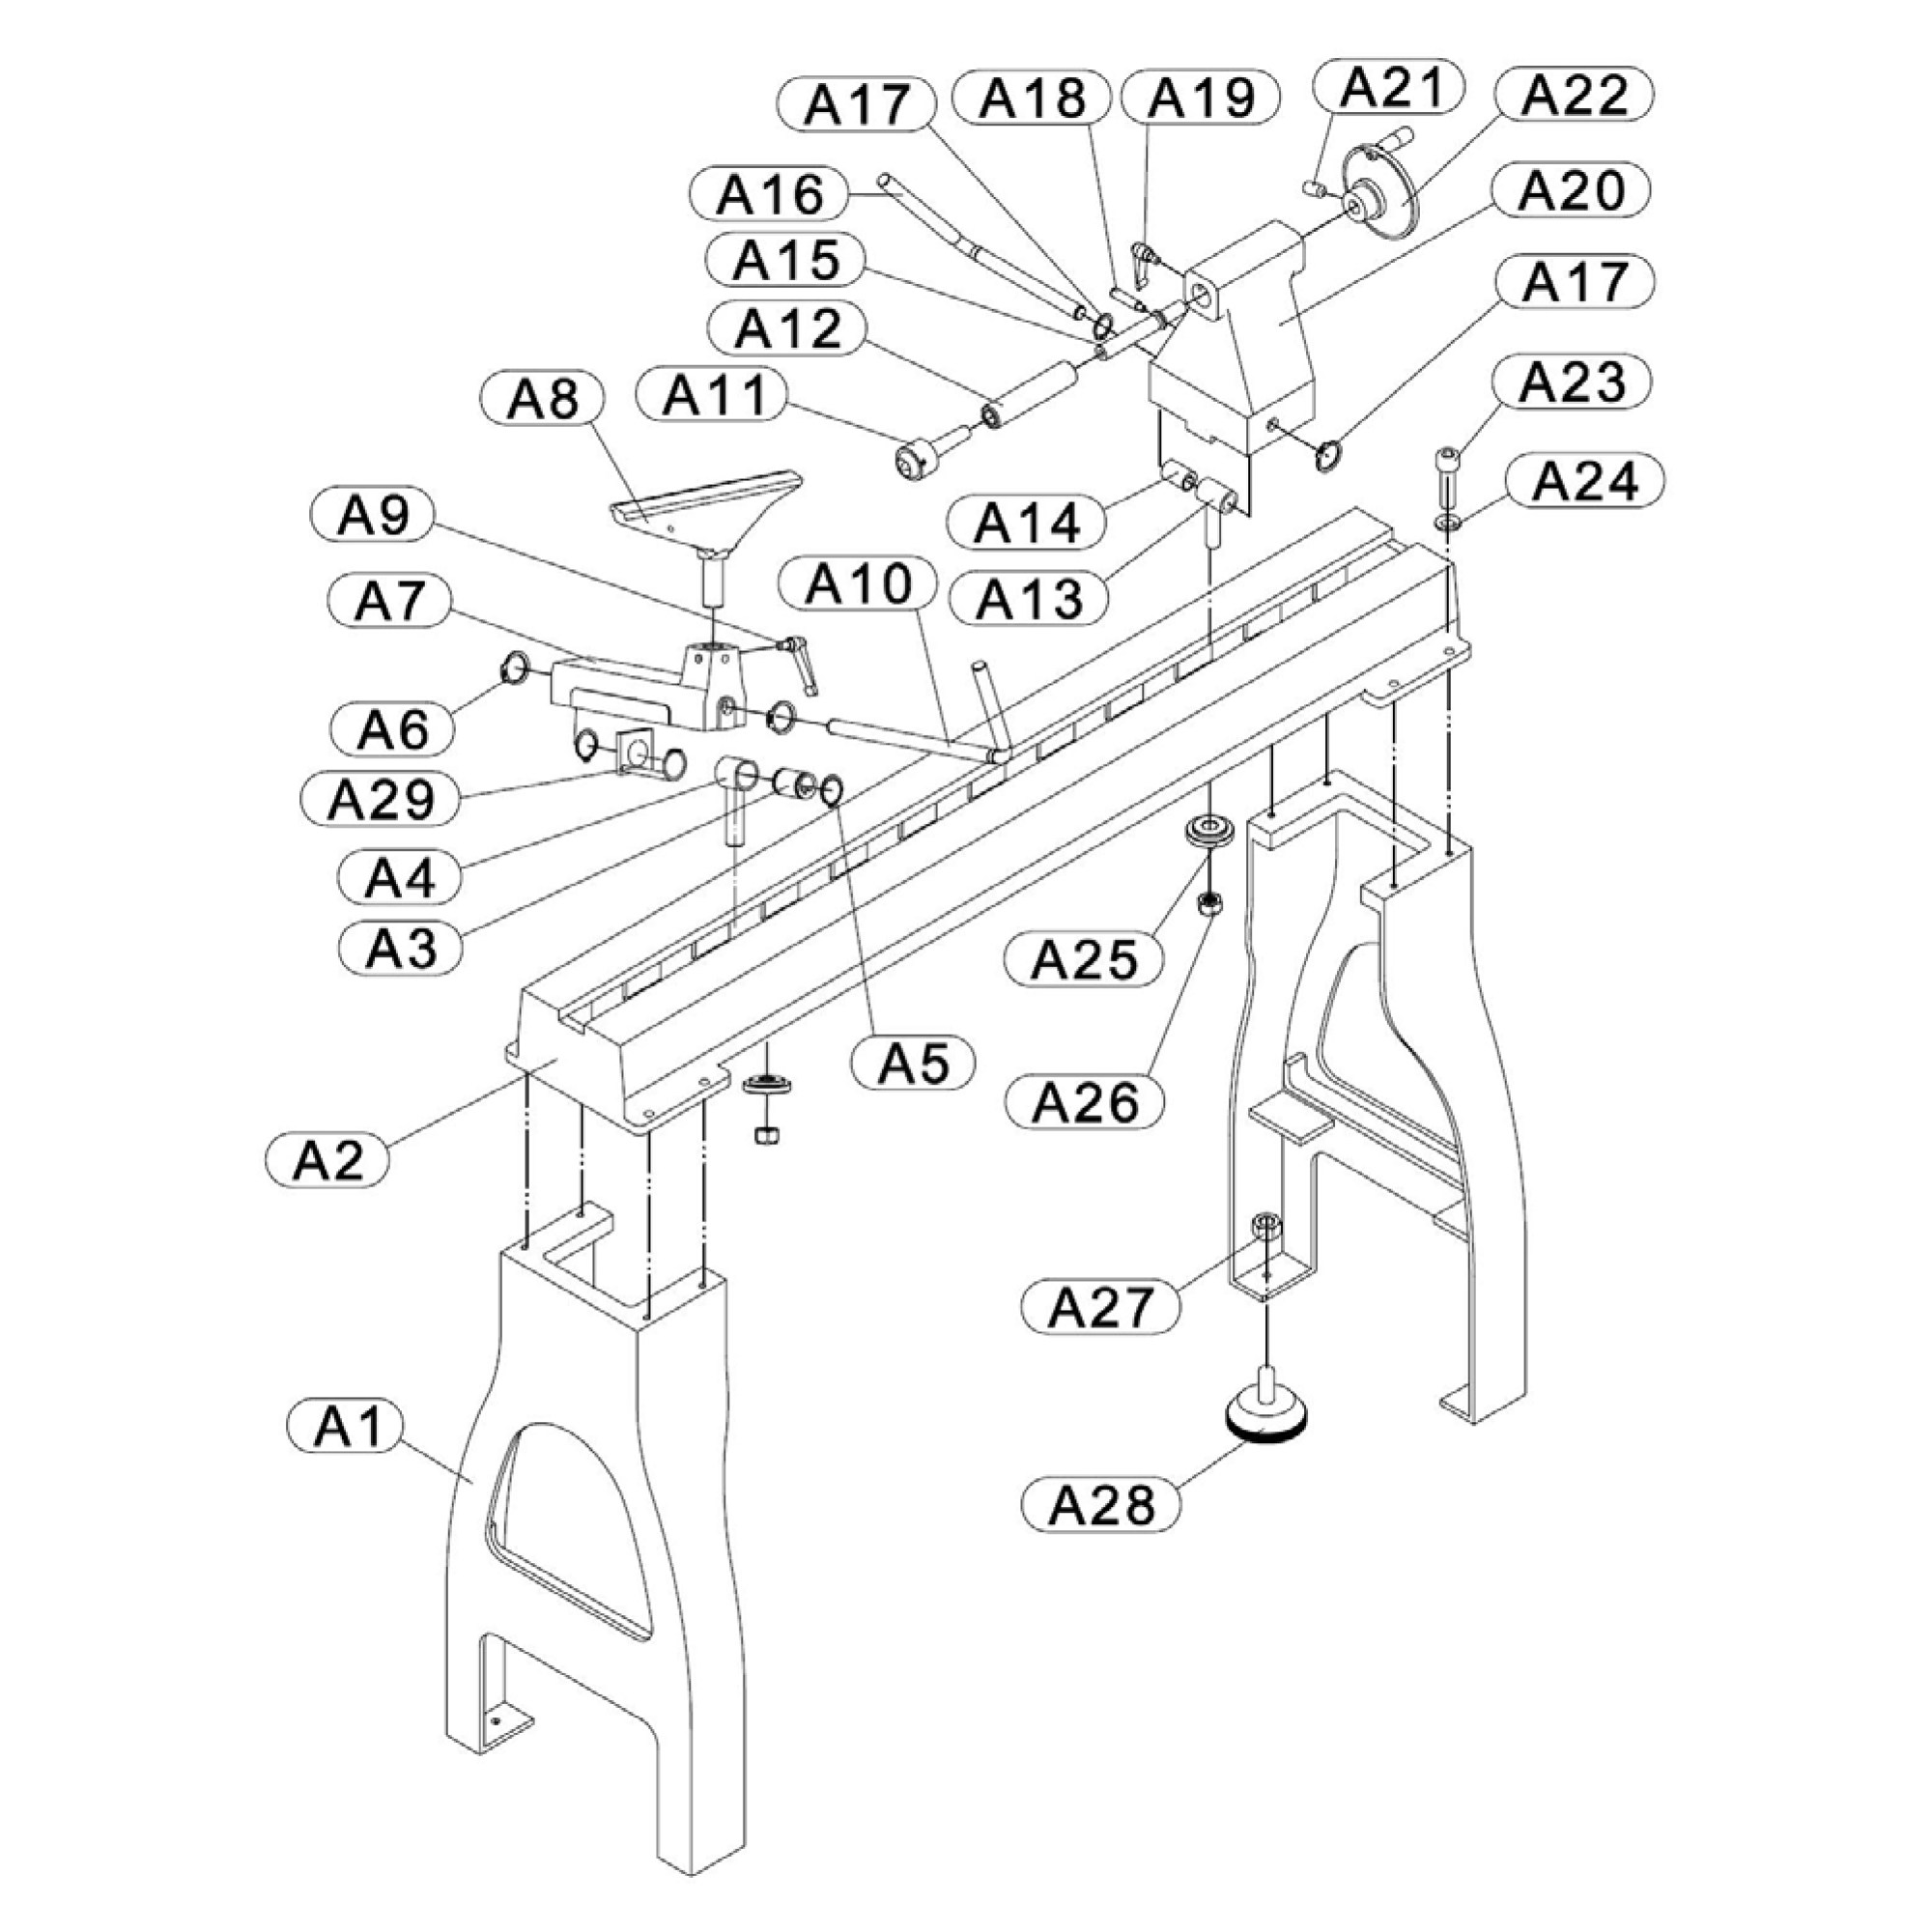 hight resolution of buy rikon model 70 305 replacement parts drive belt a diagram 305 5 0